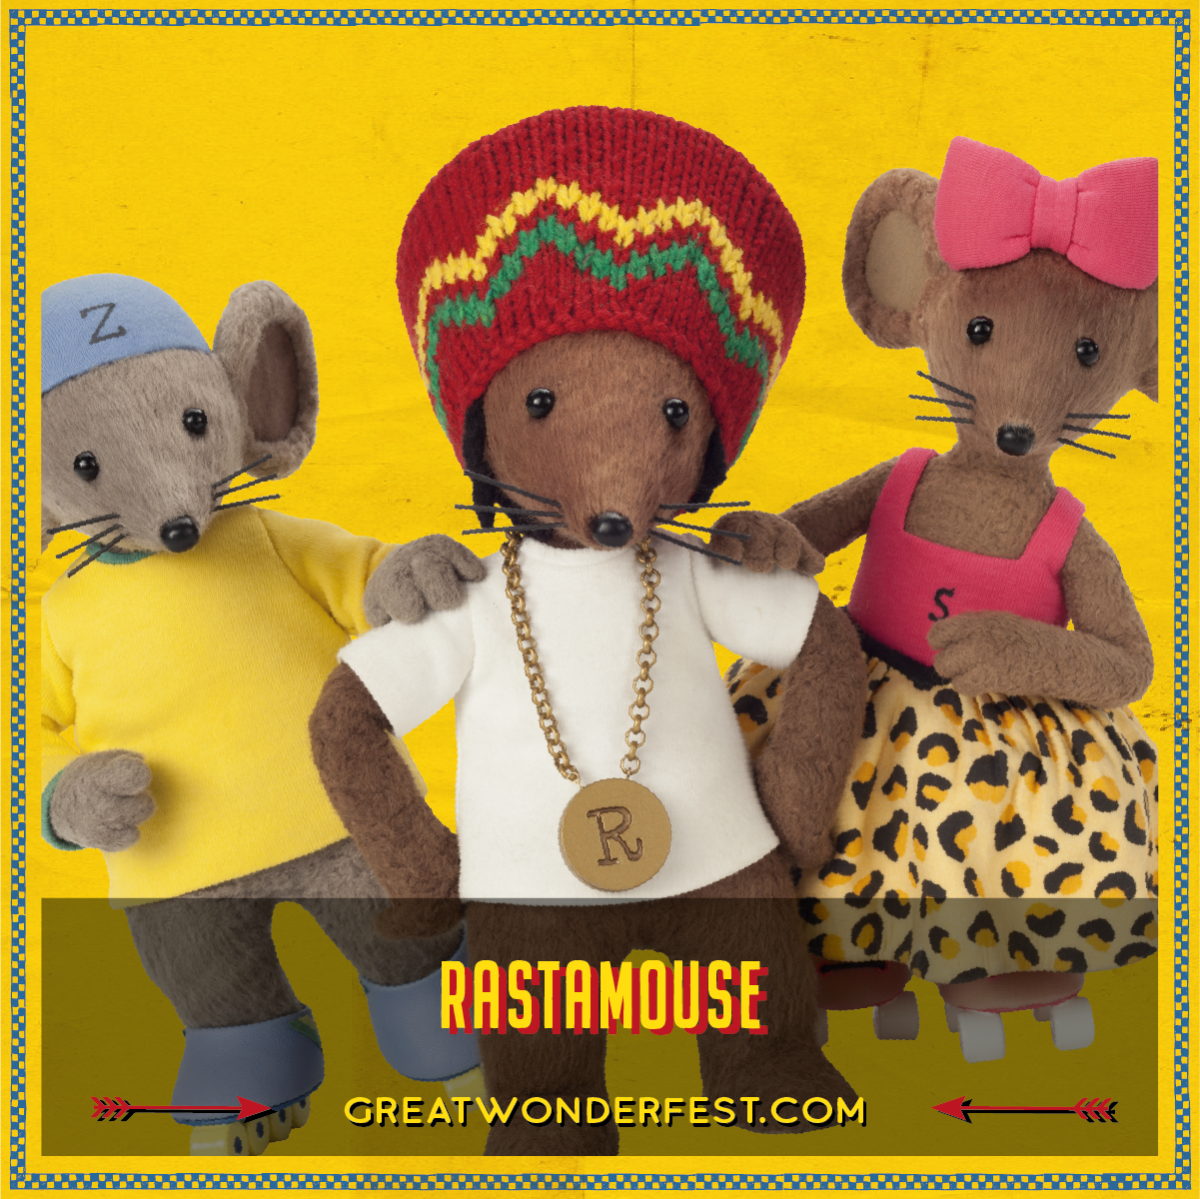 Rastamouse - The Great Wonderfest